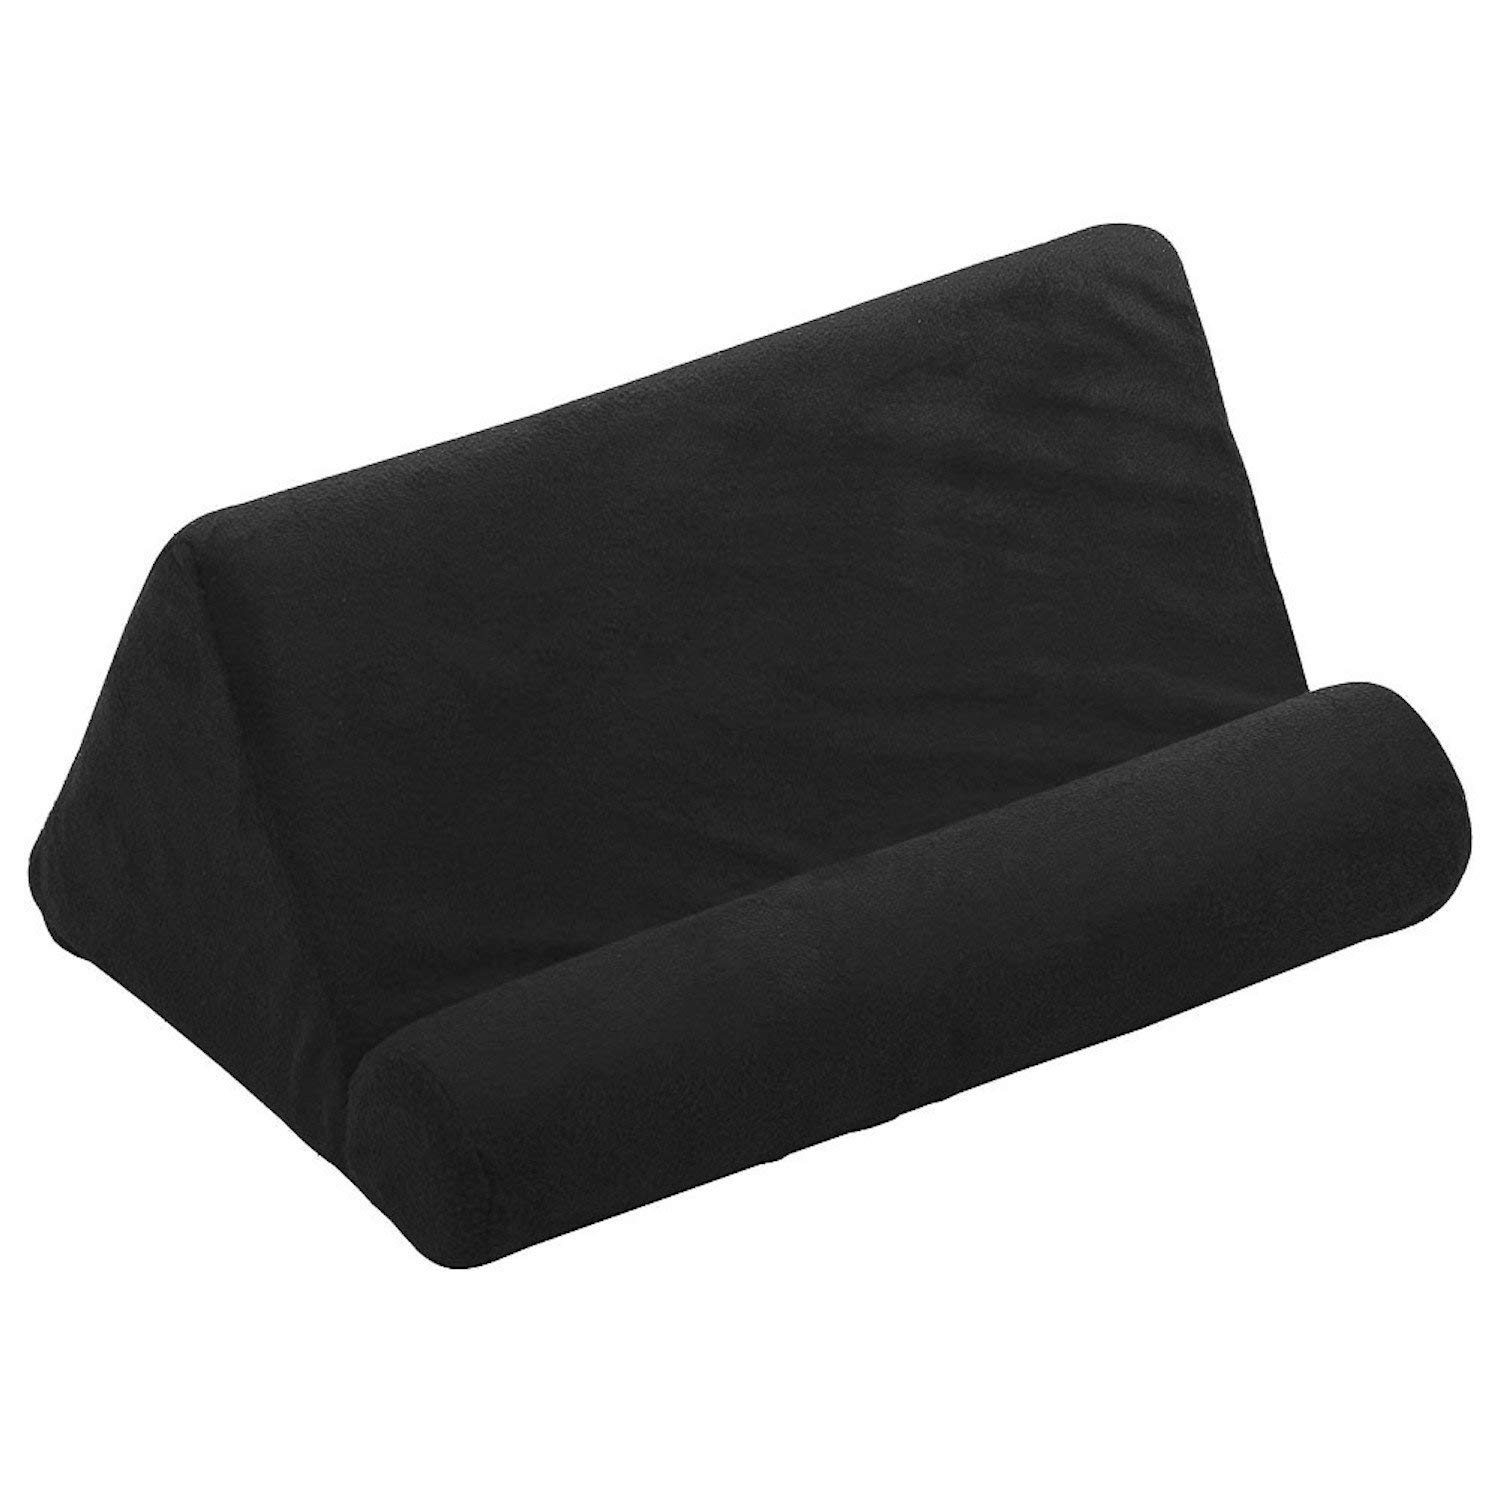 Amazon.com: Sofá de Tablet - Lap Cushion Tableta, Teclado ...